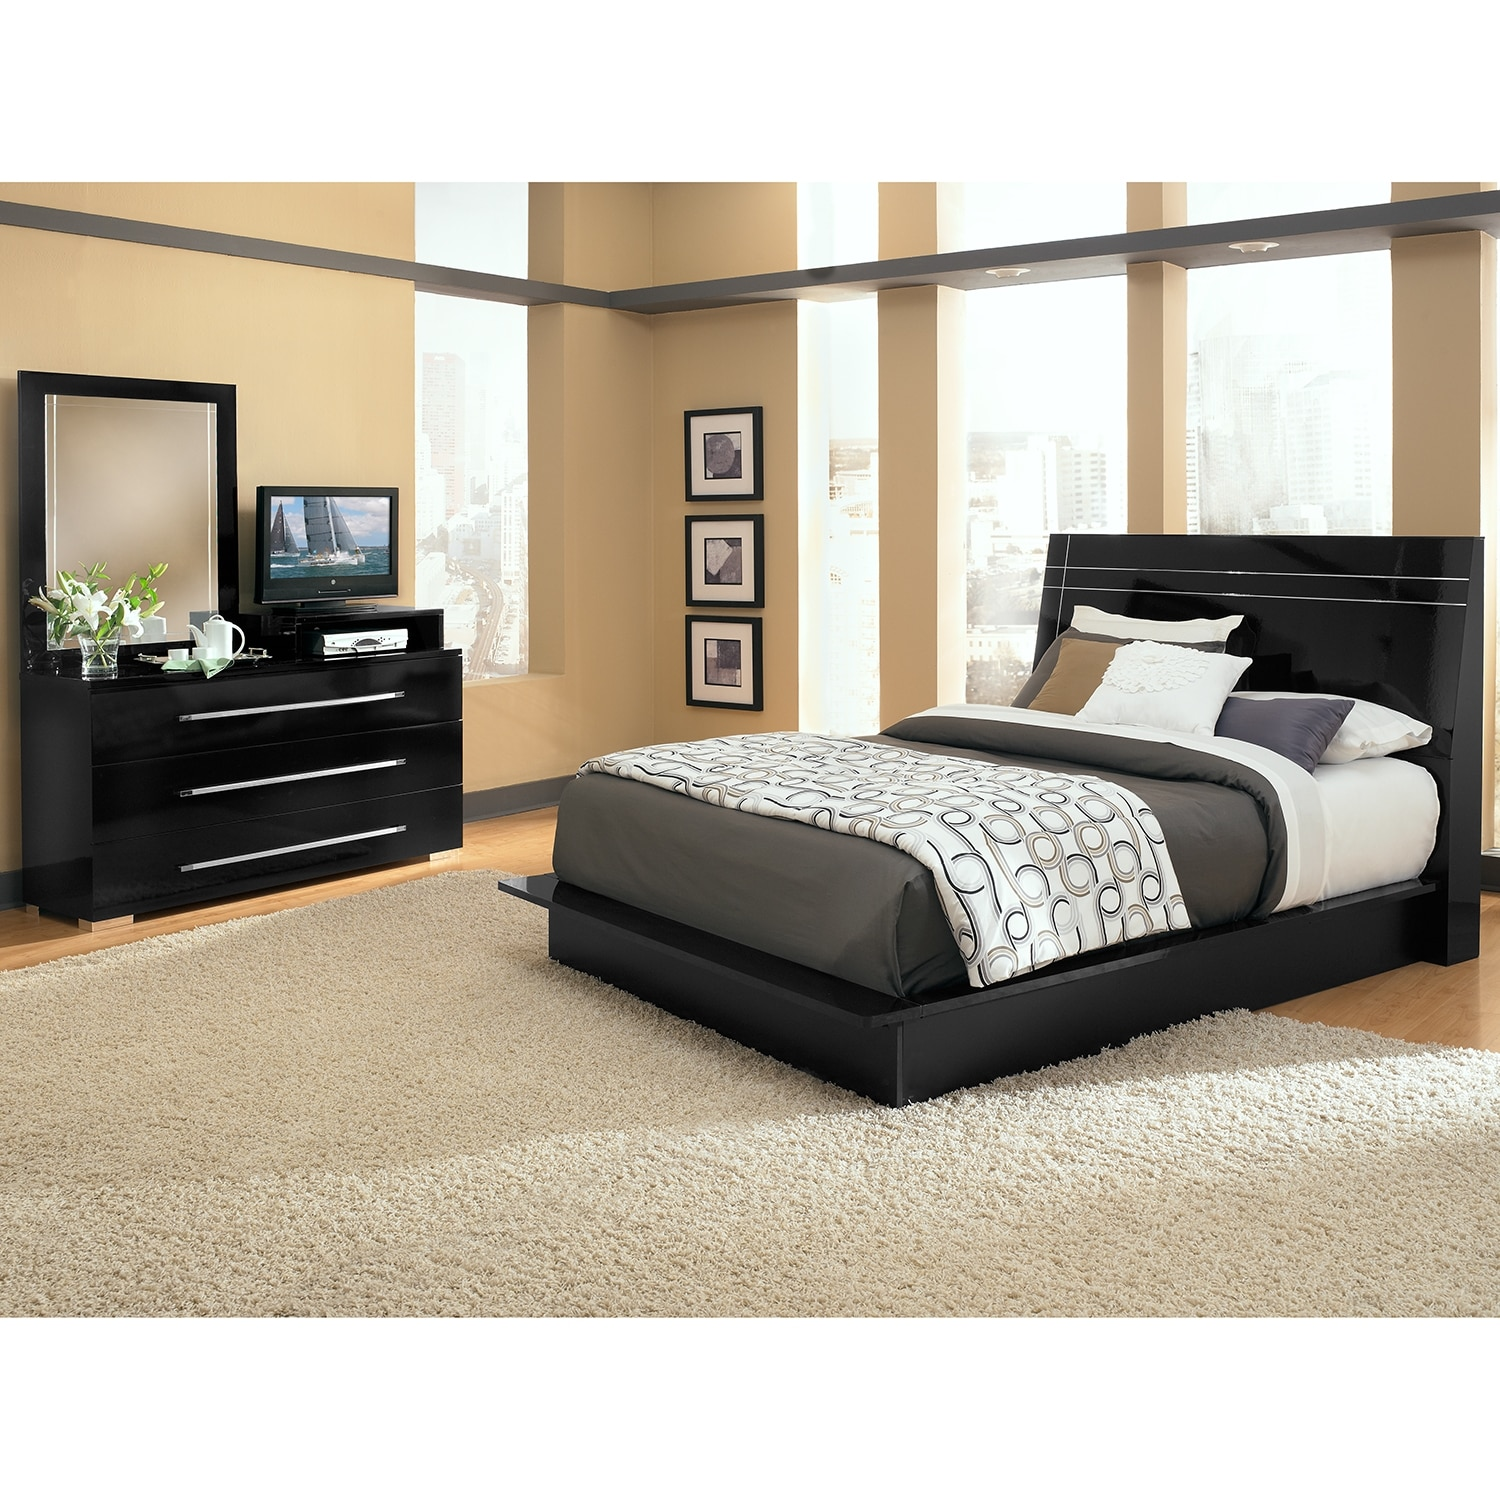 Dimora 5-Piece Queen Panel Bedroom Set With Media Dresser